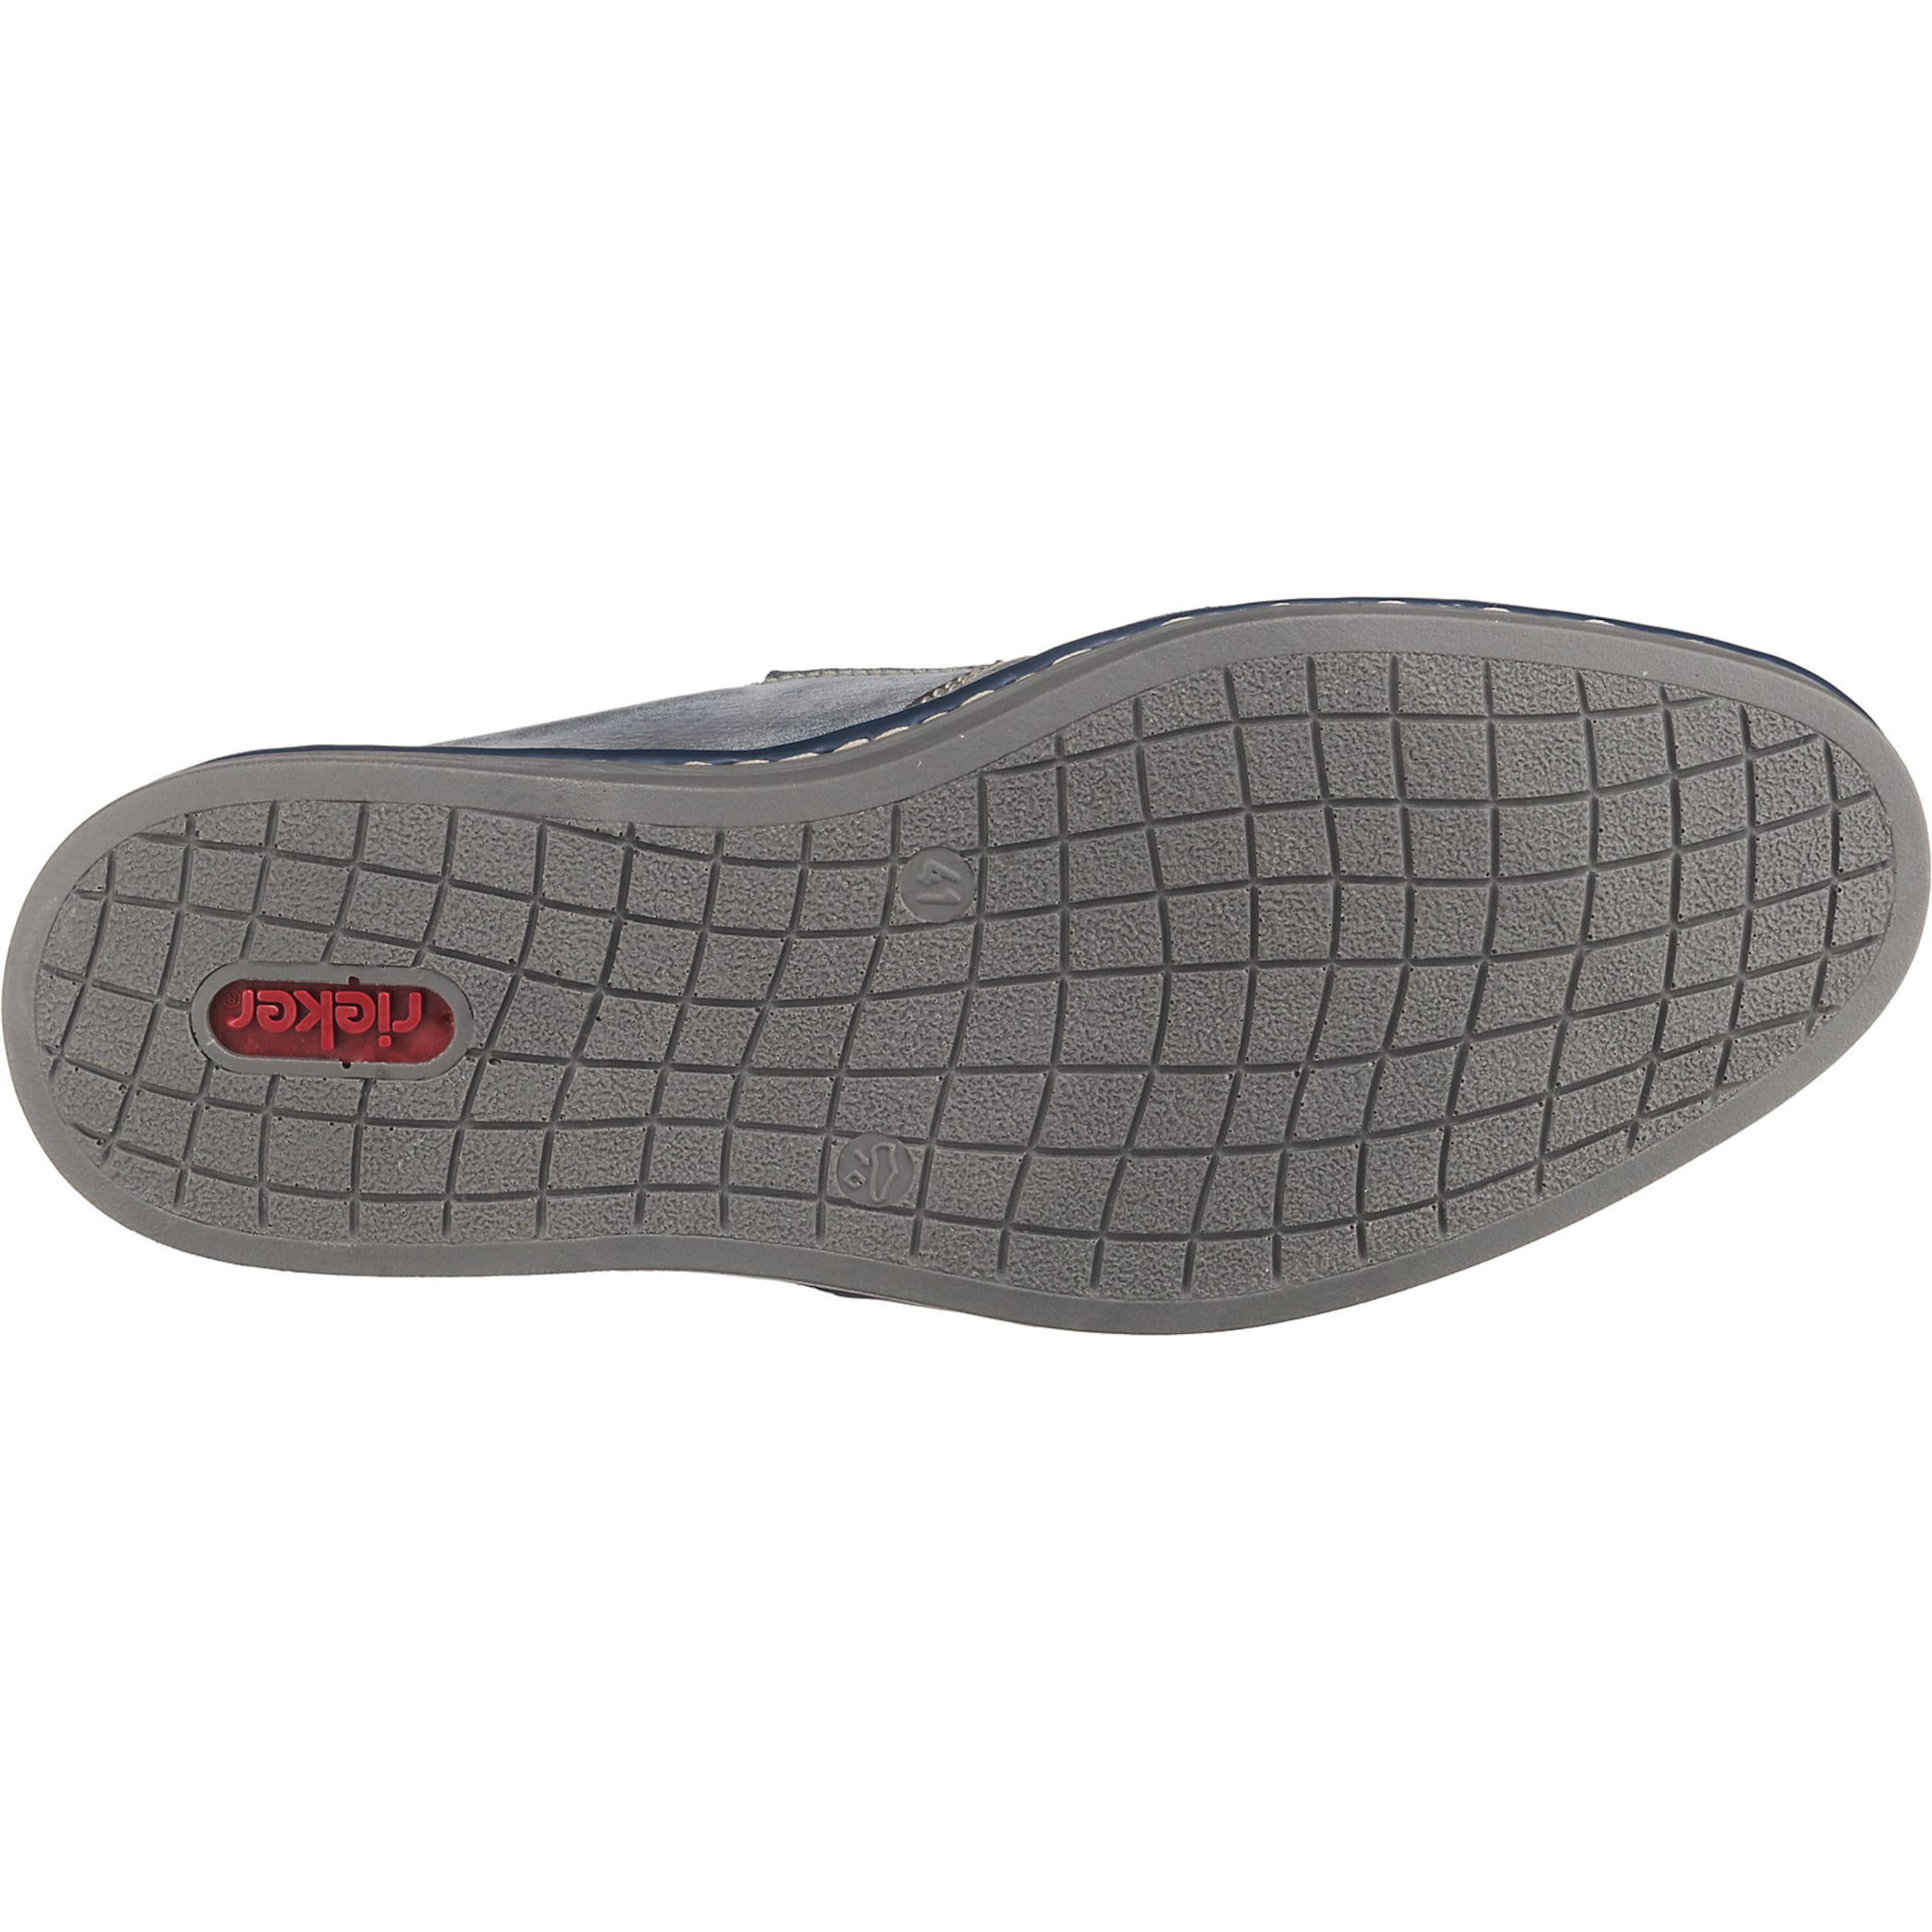 Slipper Rieker TaubenblauGrau TaubenblauGrau Rieker In Rieker Slipper In Slipper vmN8w0n